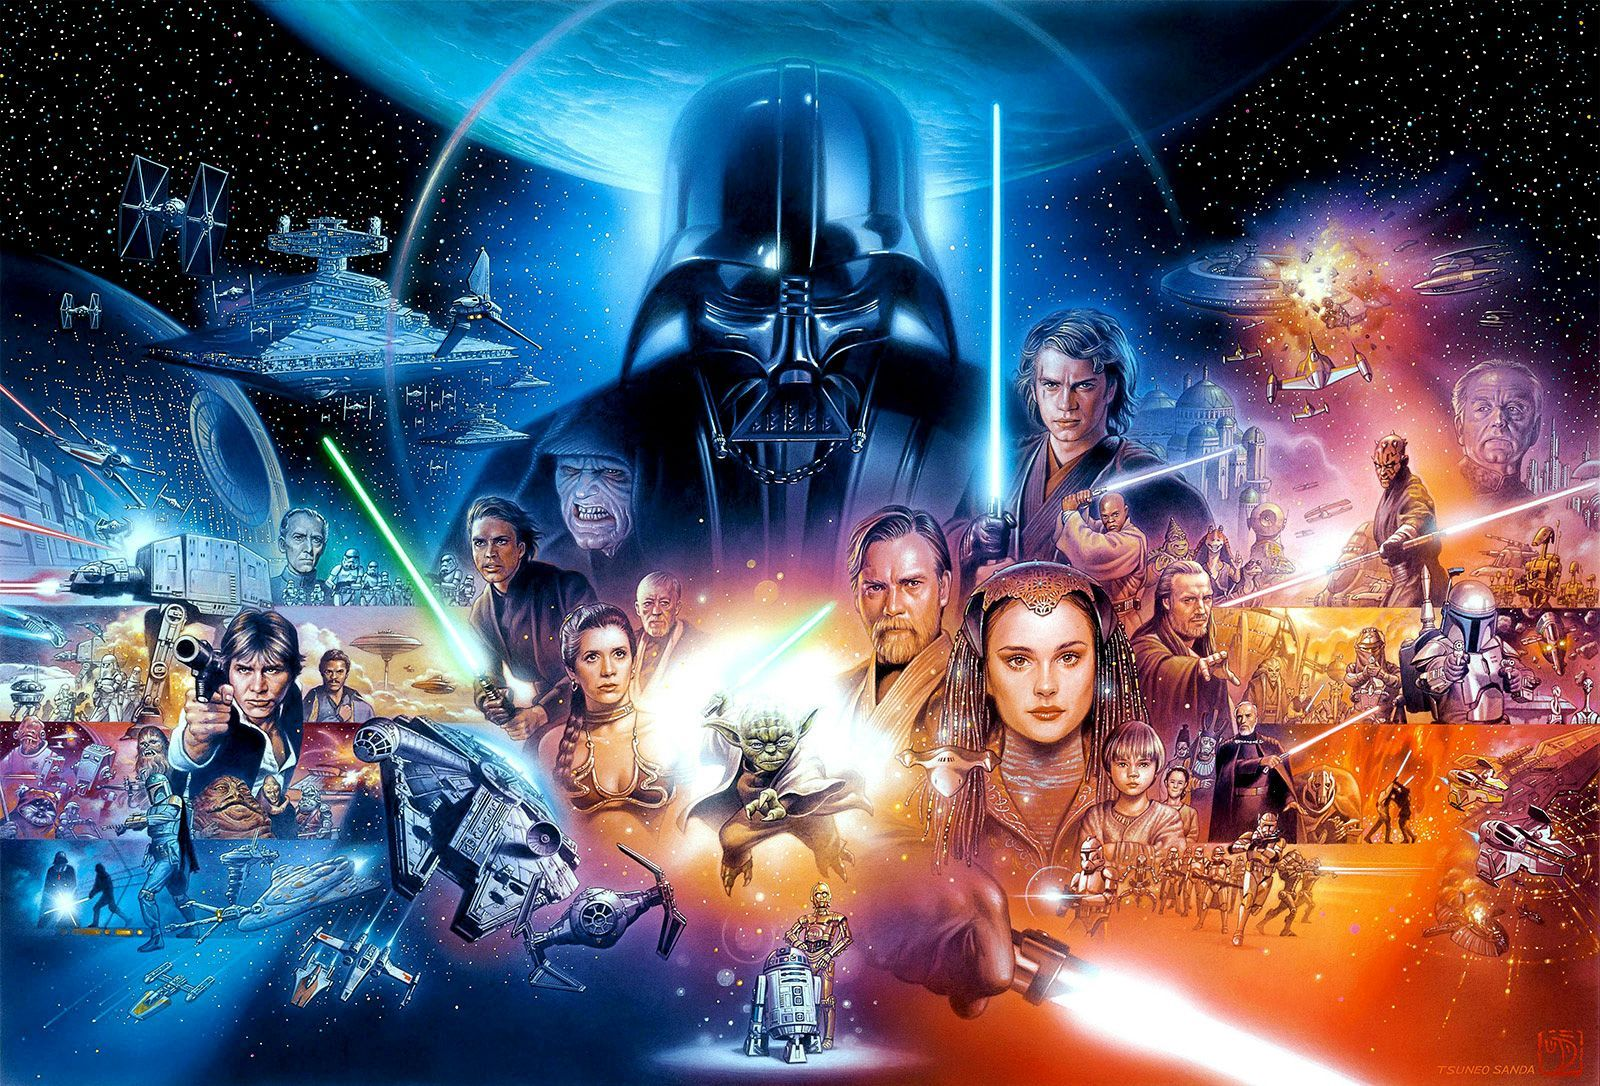 Pin By Mariana Lopez On Star Wars Star Wars Wallpaper Star Wars Poster Star Wars Movie